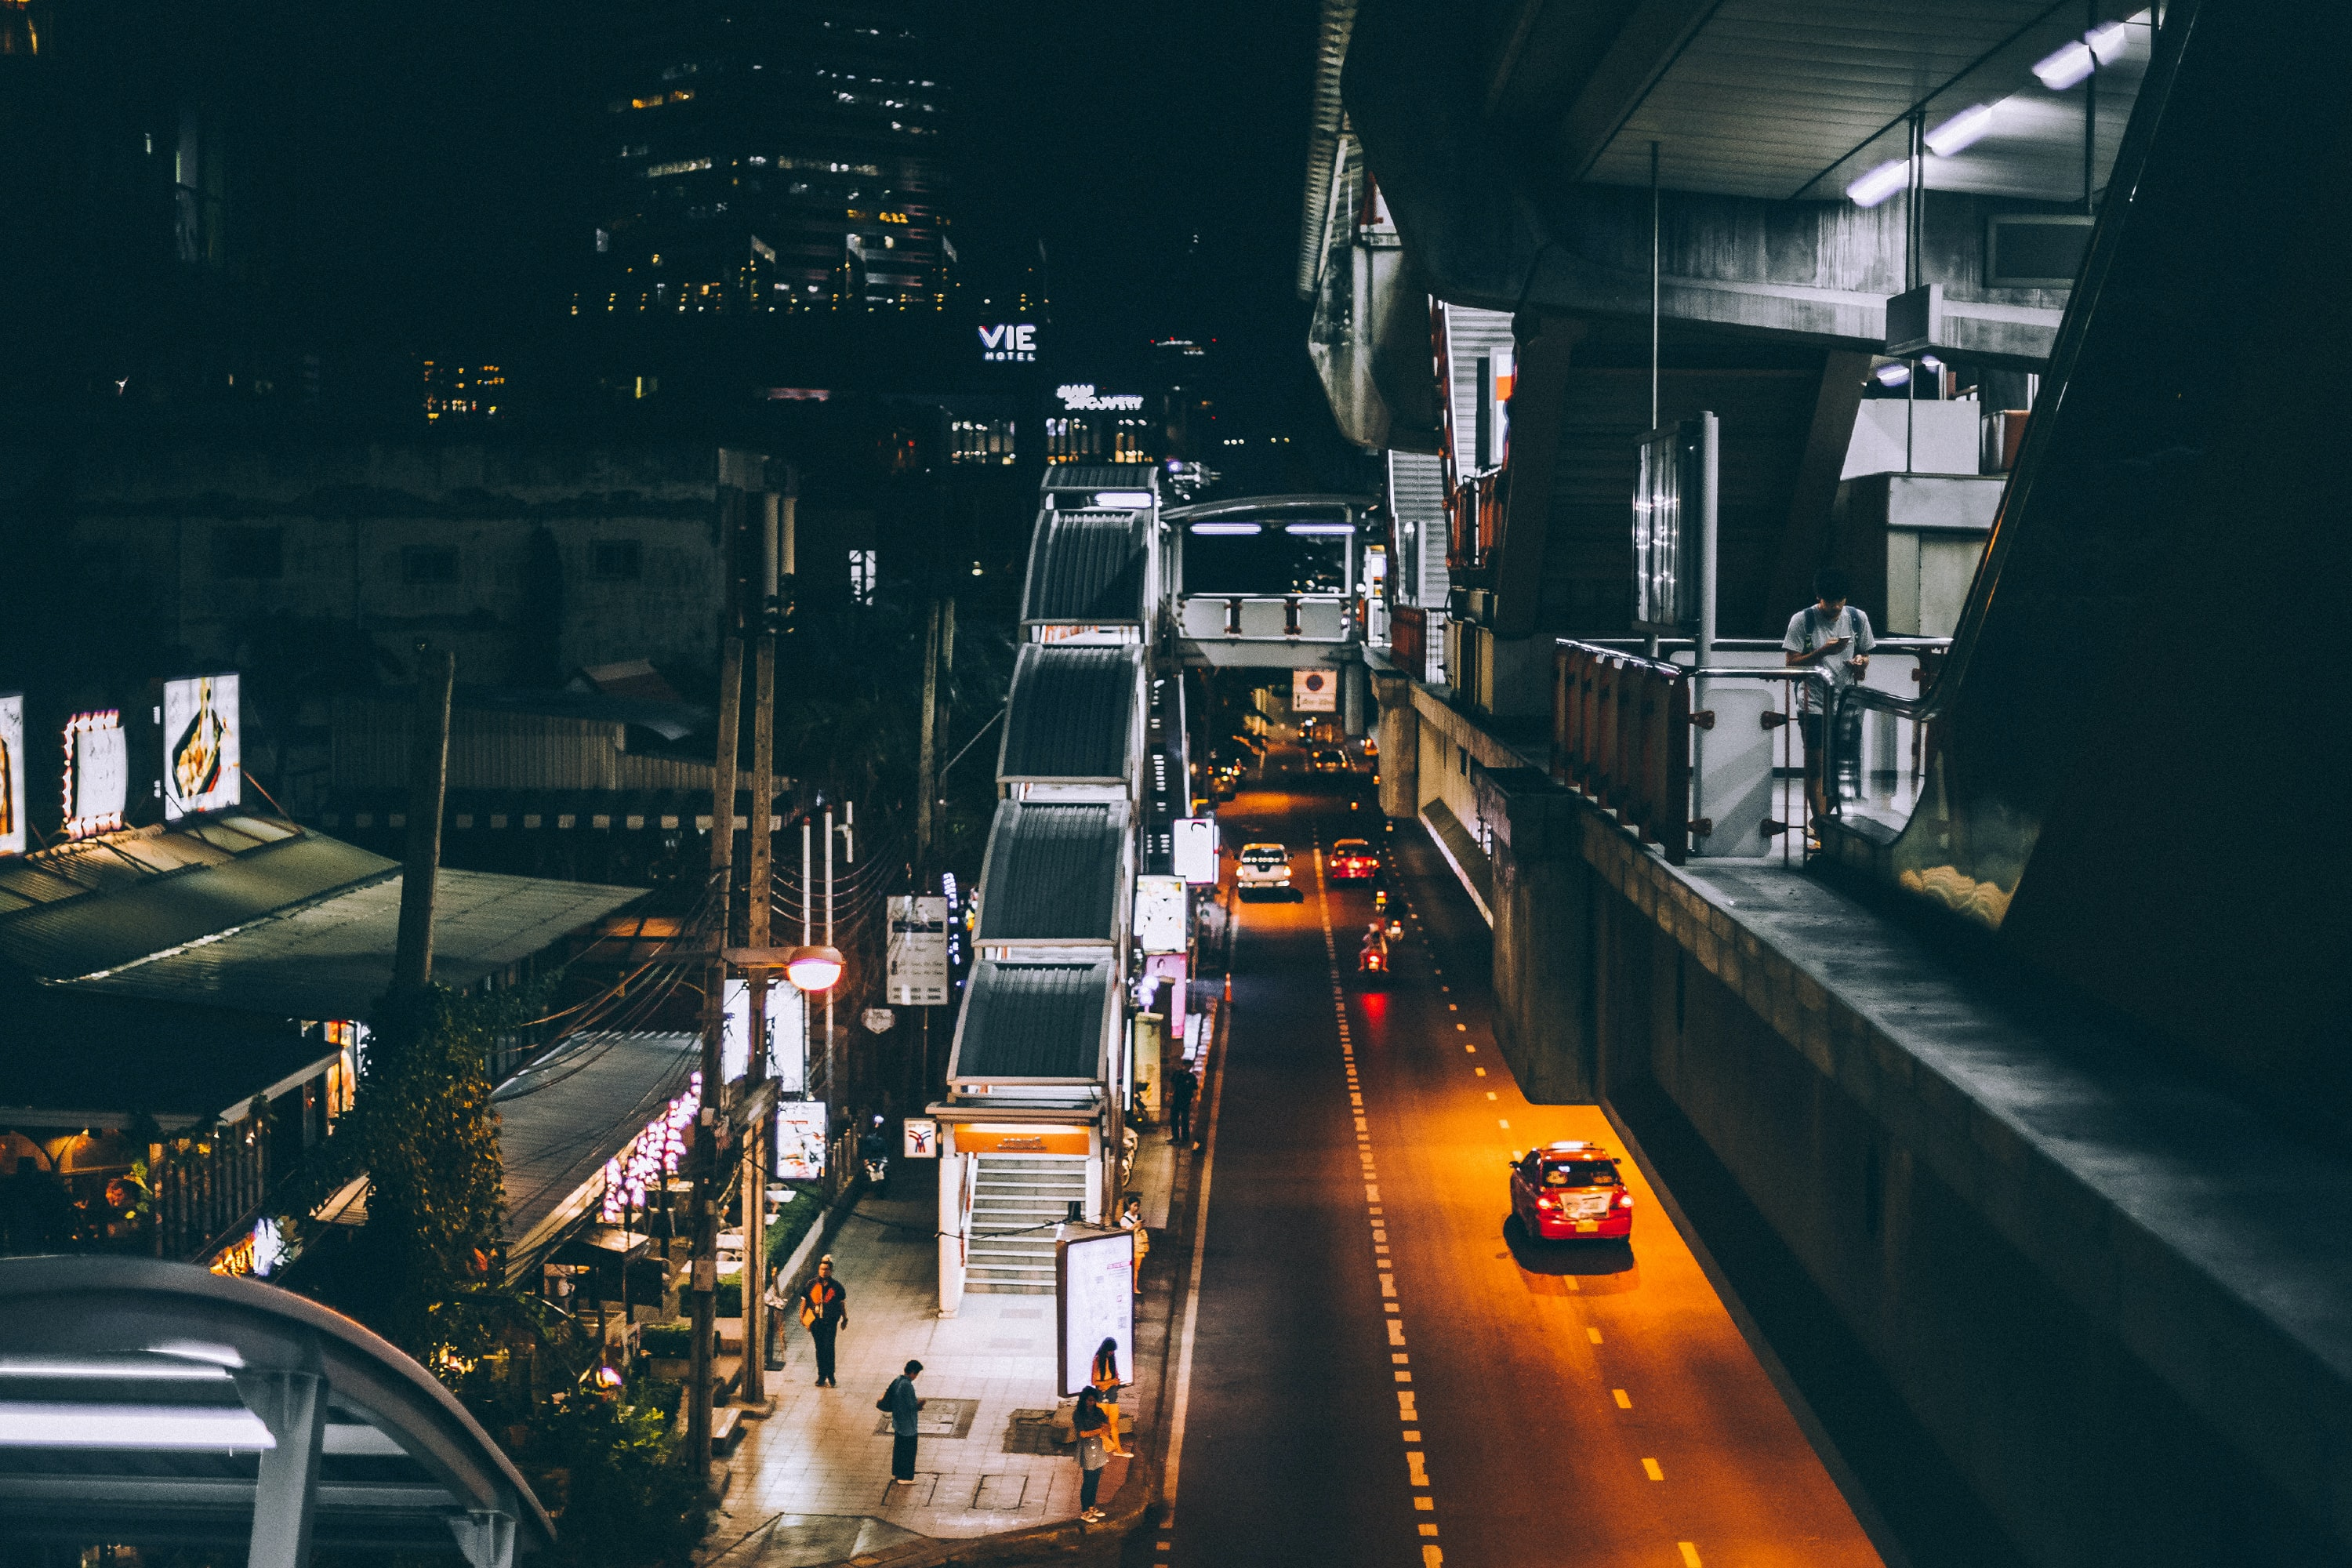 high-angle architectural photography of concrete structure with road on bottom during nighttime